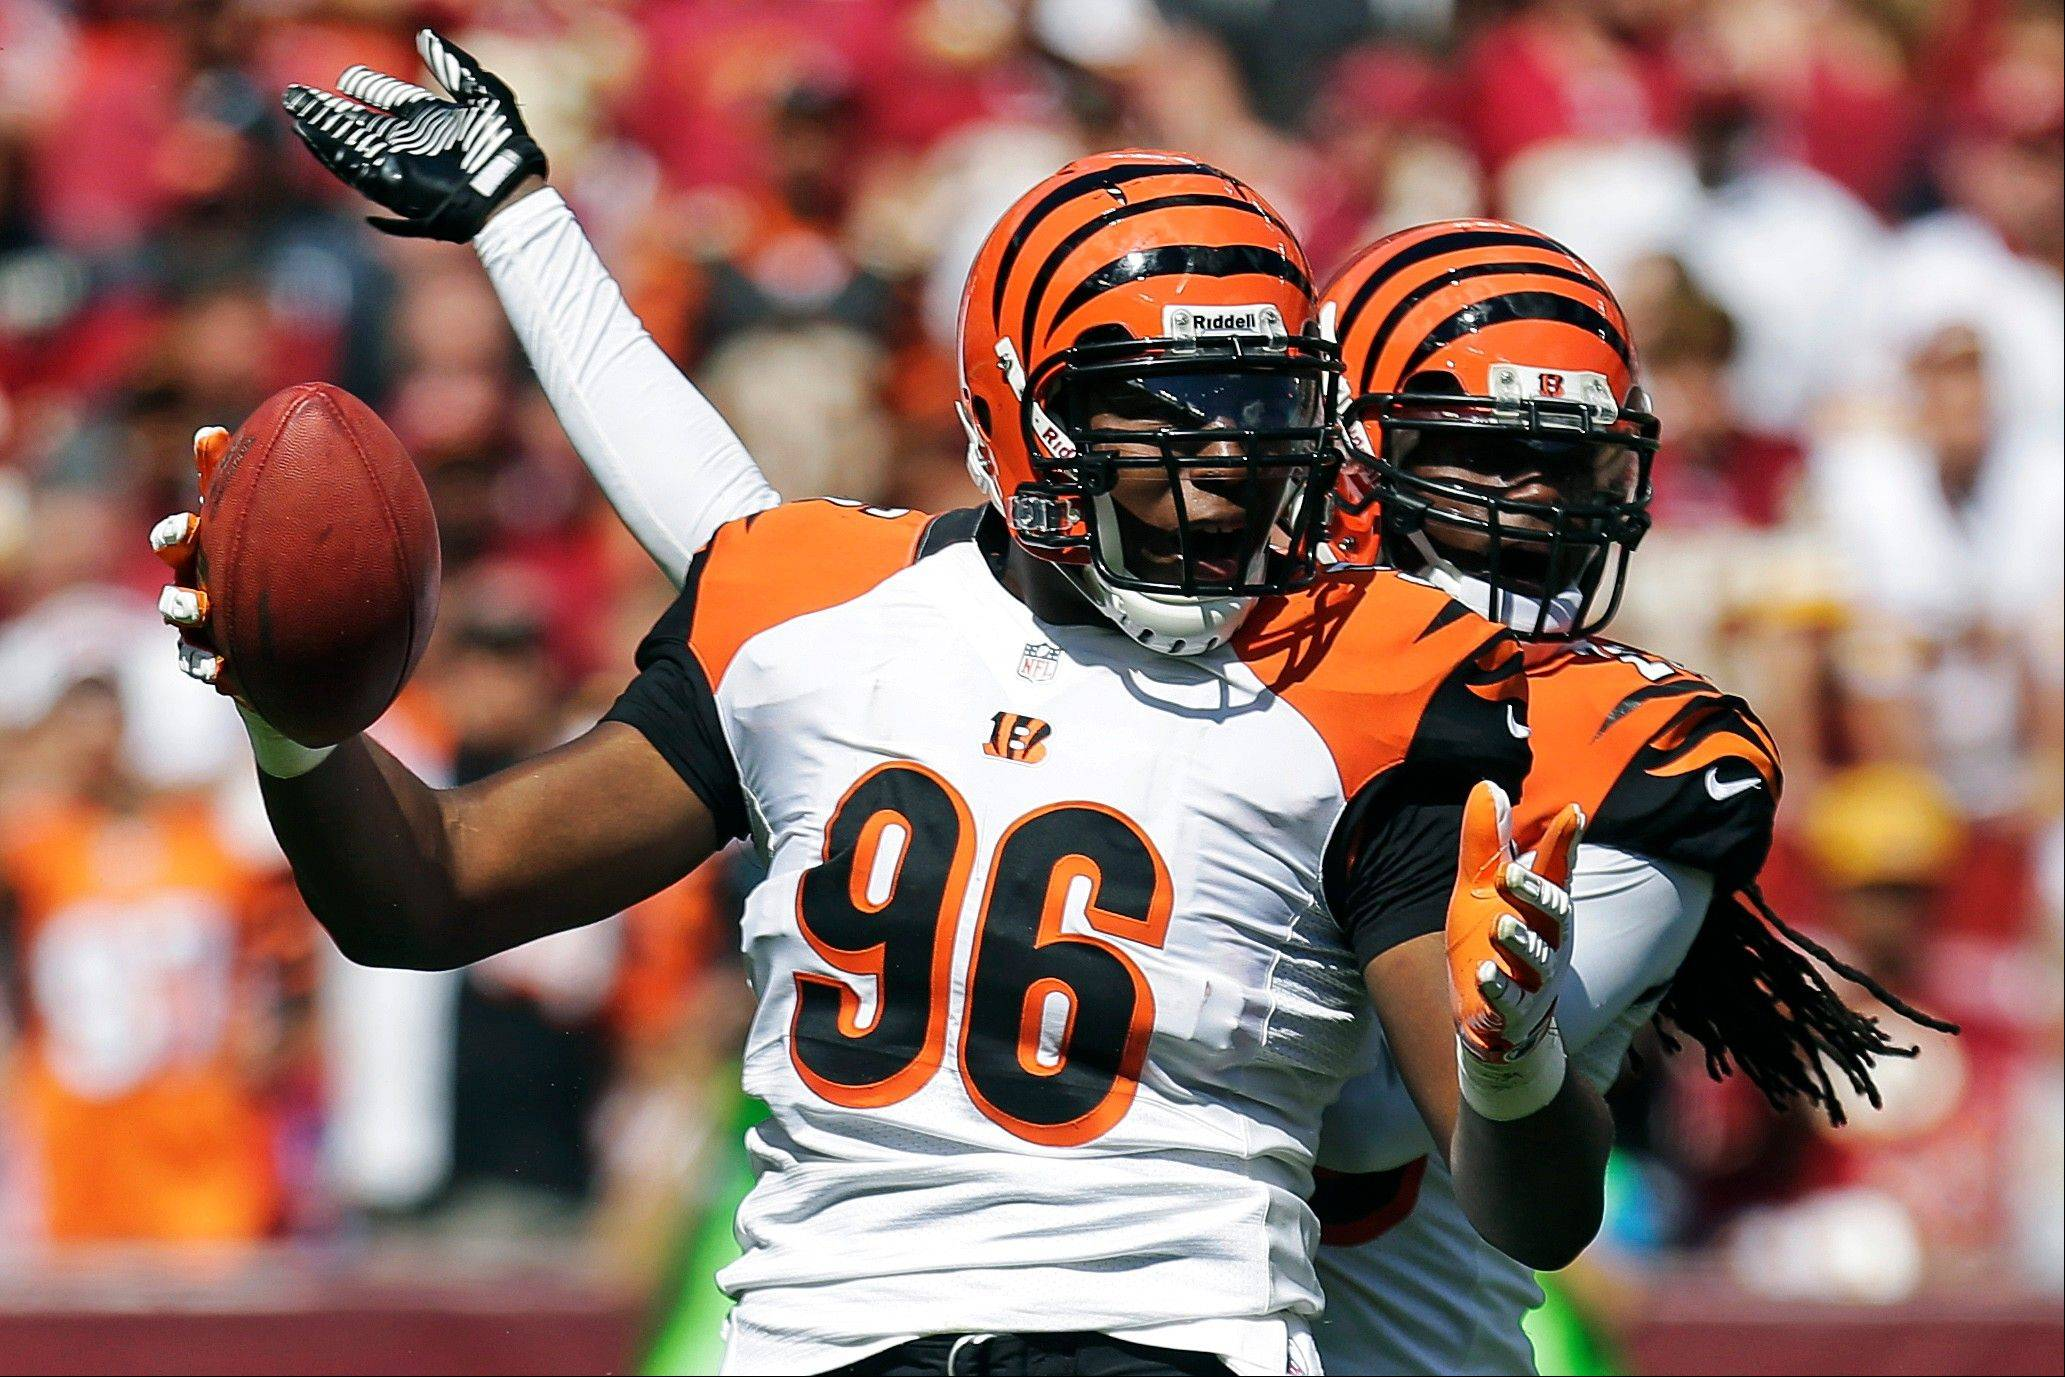 Cincinnati Bengals free safety Reggie Nelson celebrates forcing Washington Redskins quarterback Robert Griffin III to fumble during the first half Sunday in Landover, Md.